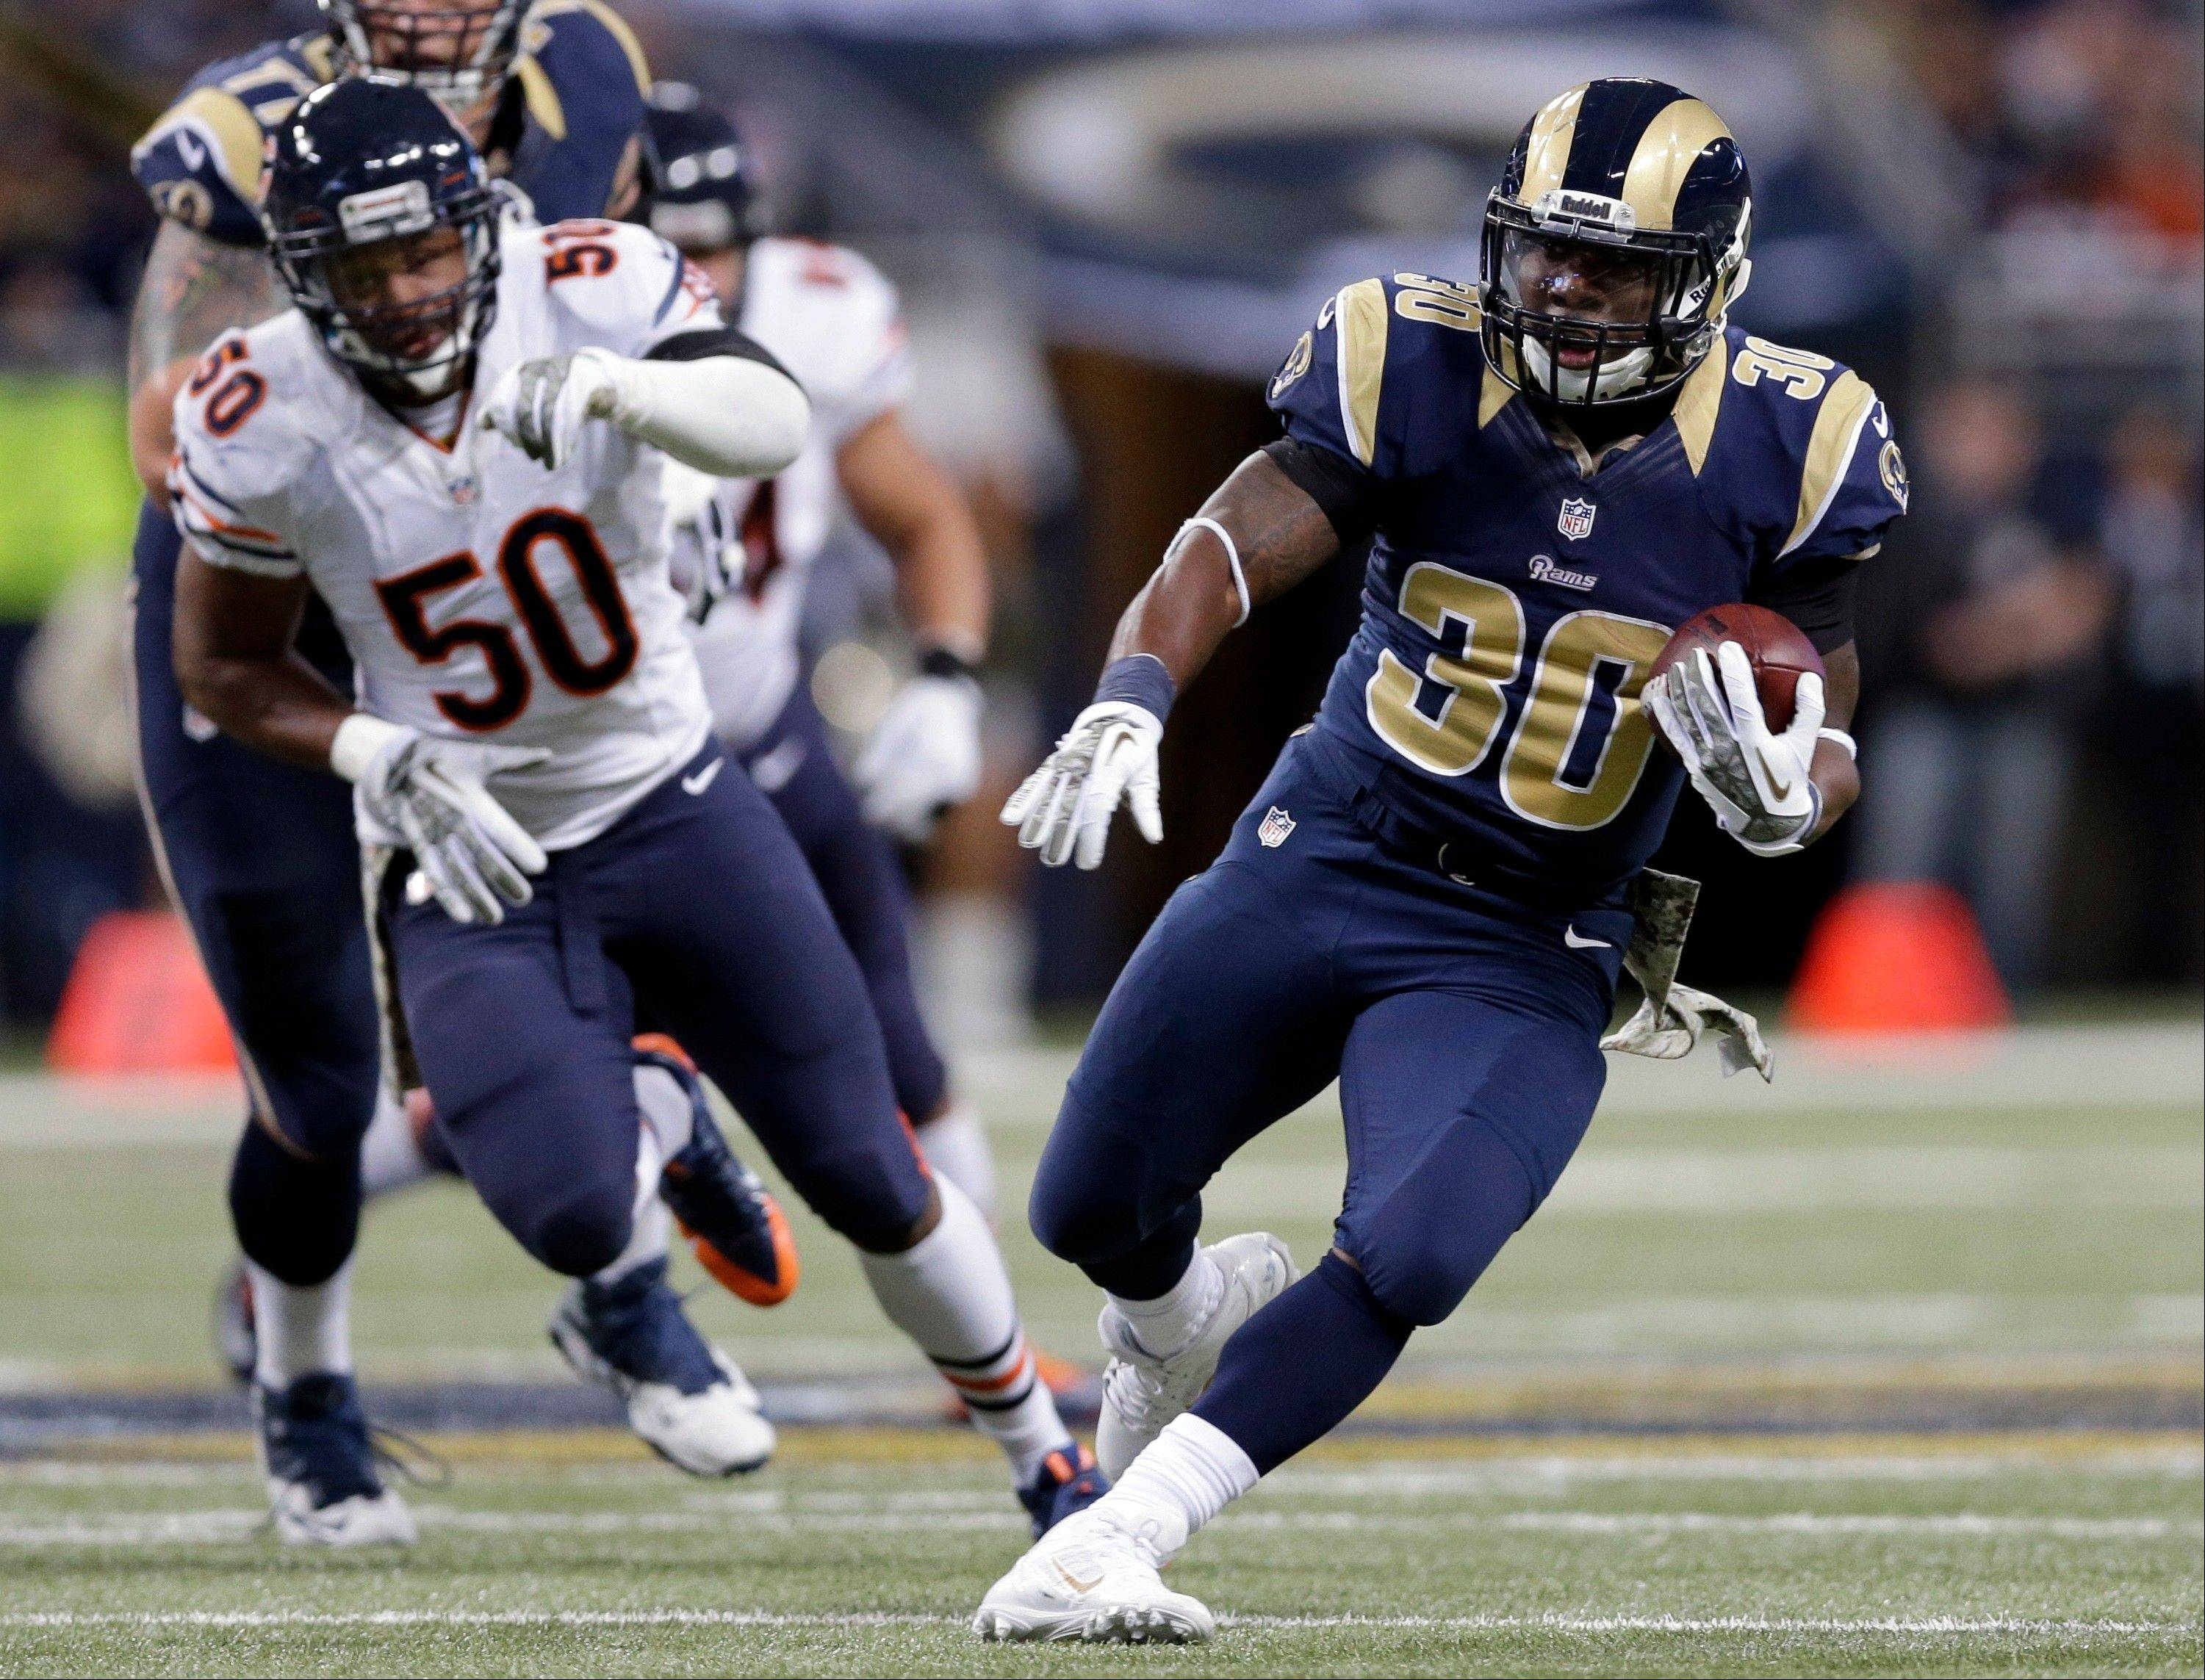 St. Louis Rams running back Zac Stacy, right, runs for a 35-yard gain as Chicago Bears linebacker James Anderson (50) pursues during the first quarter.